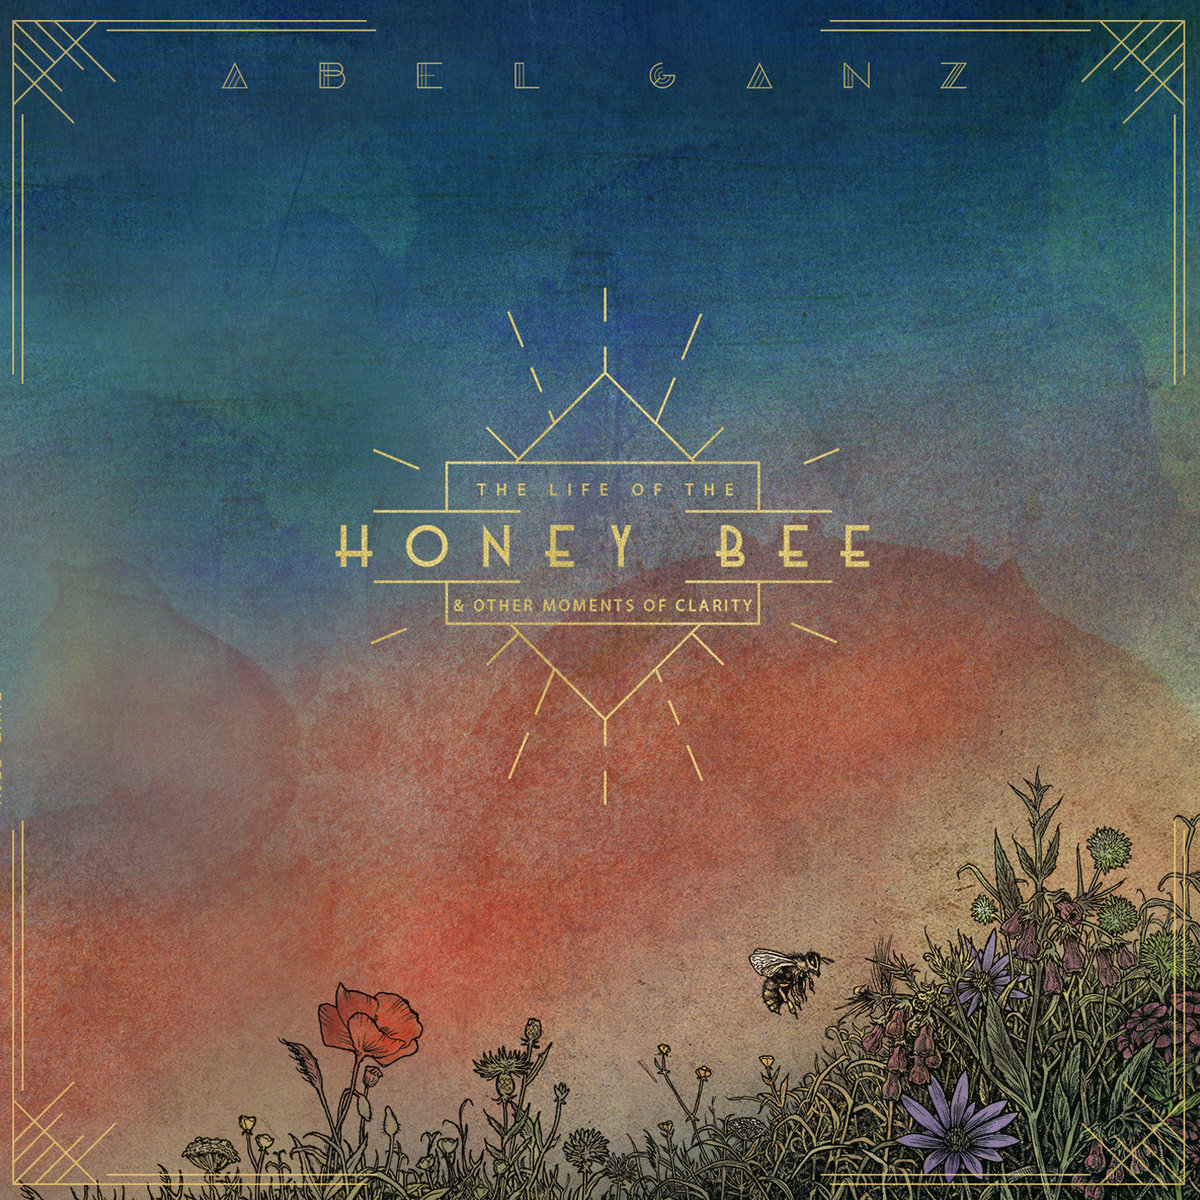 ABEL GANZ – The Life of the Honey Bee and Other Moments of Clarity